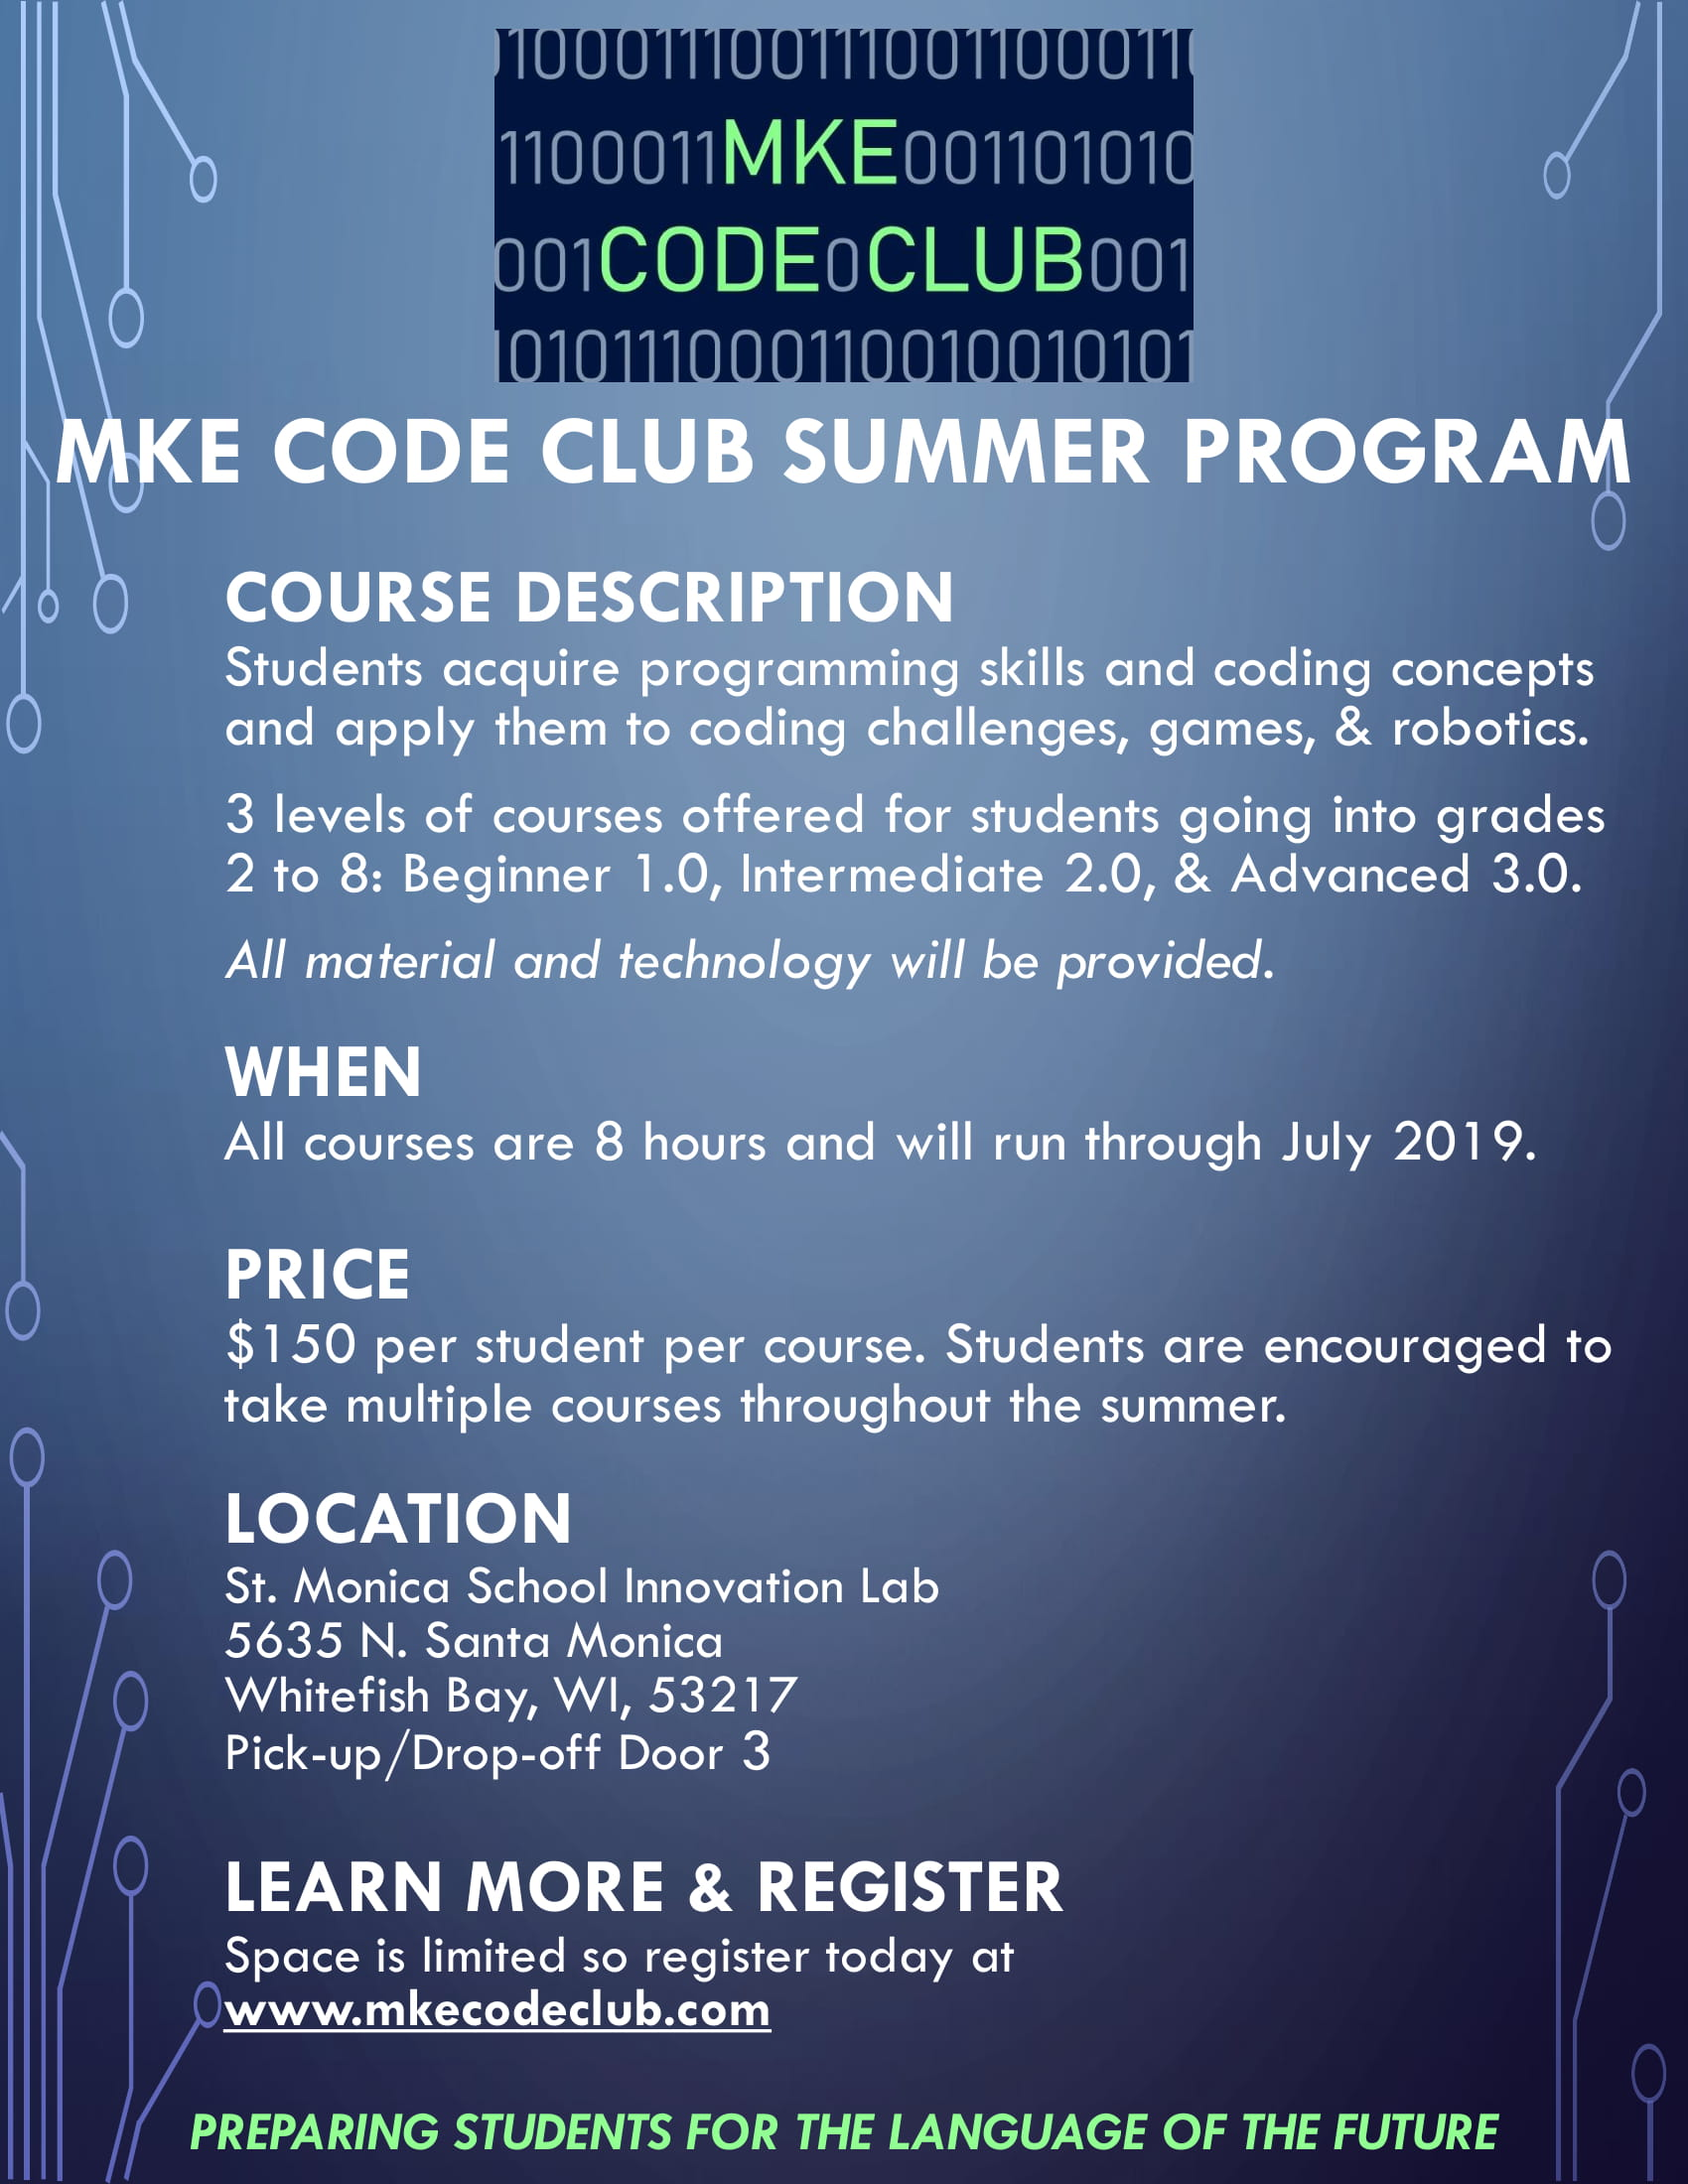 Go to  www.mkecodeclub.com  for more information!